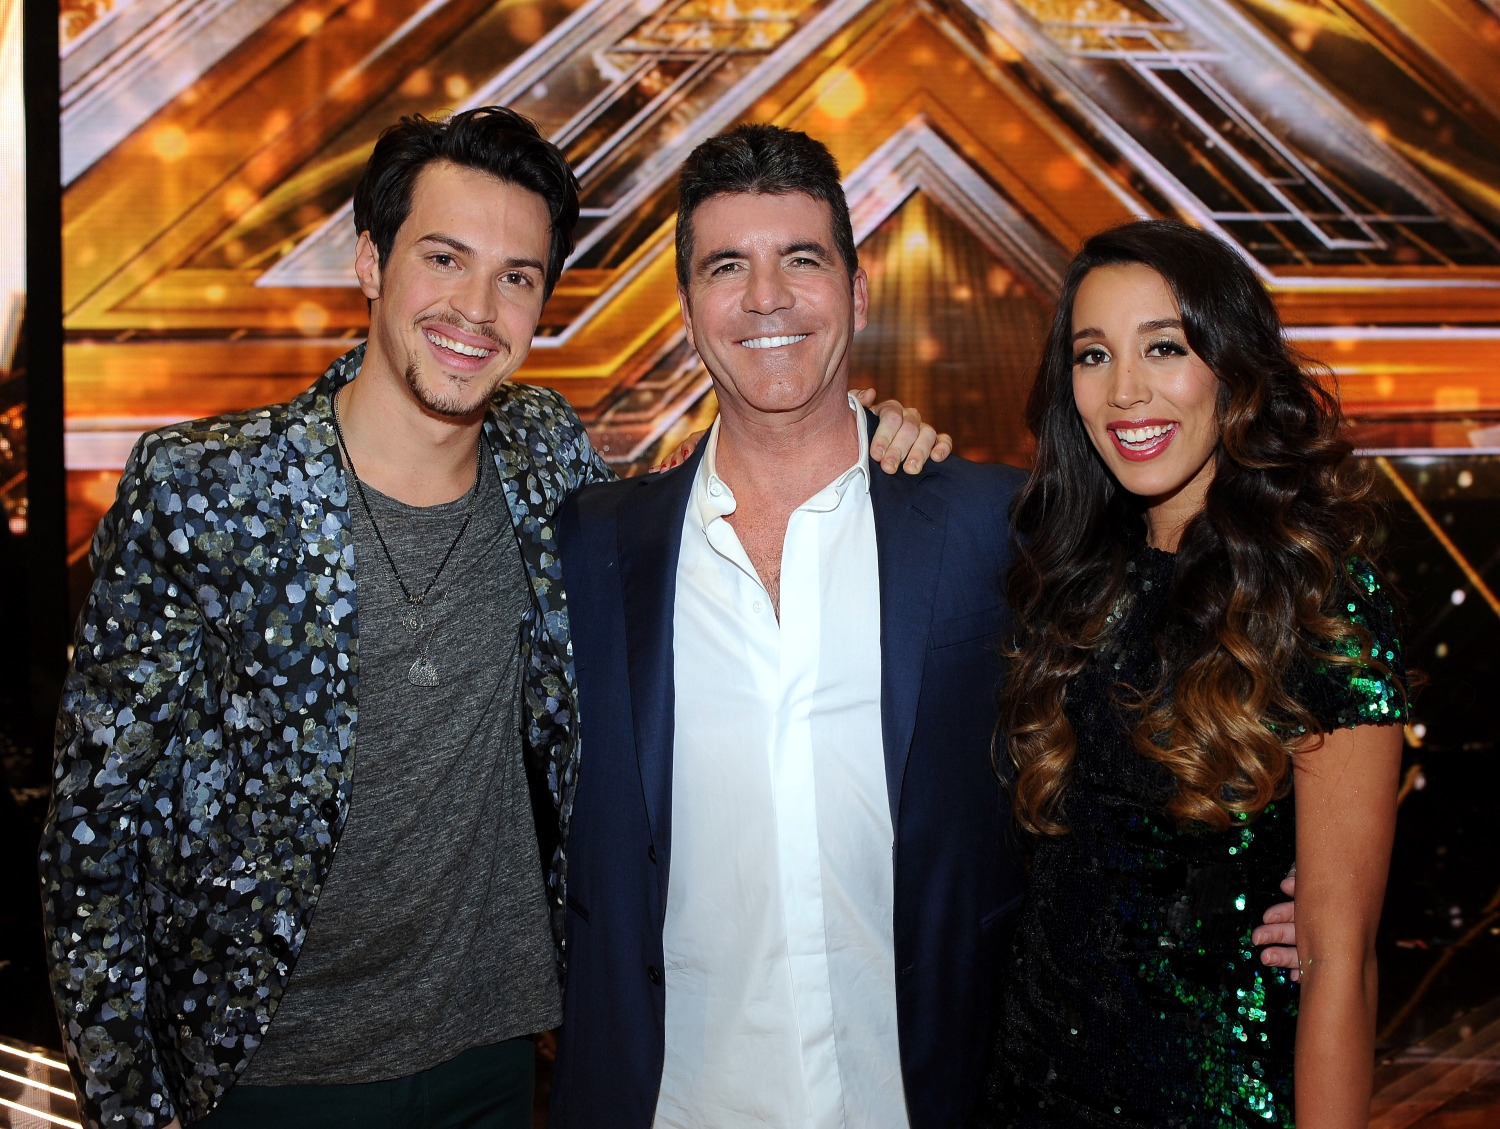 Alex & Sierra: The X Factor Winners Hoping To Babysit For